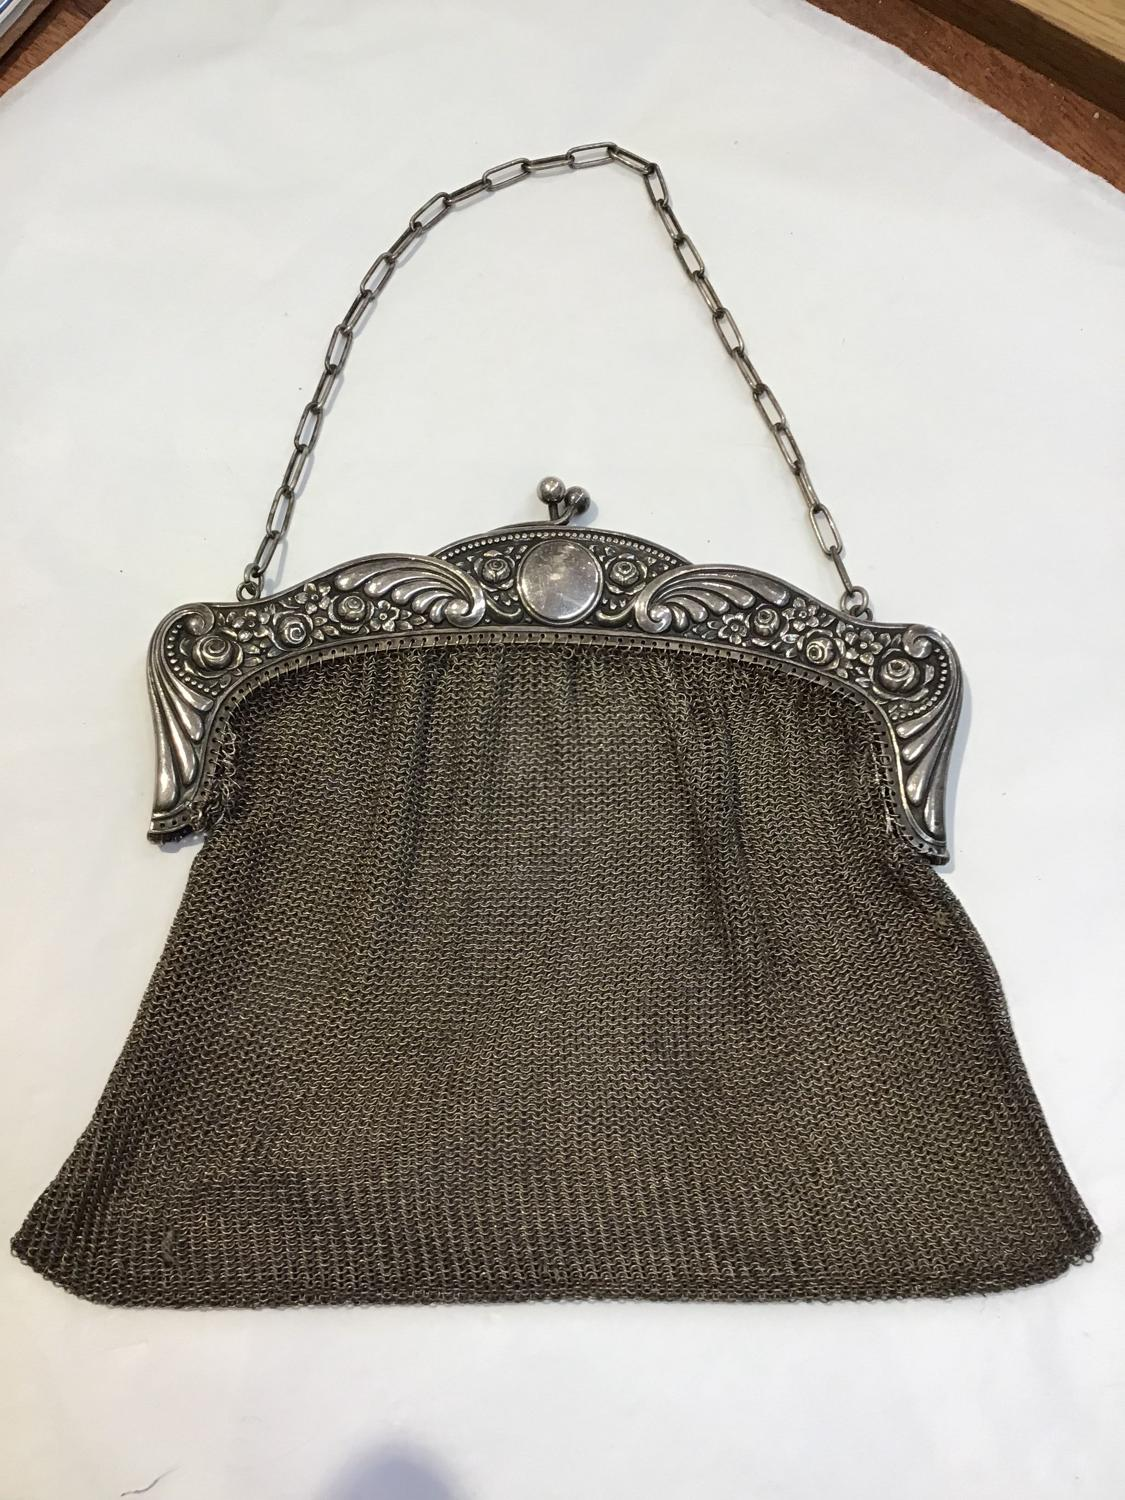 Edwardian silver plated chain bag